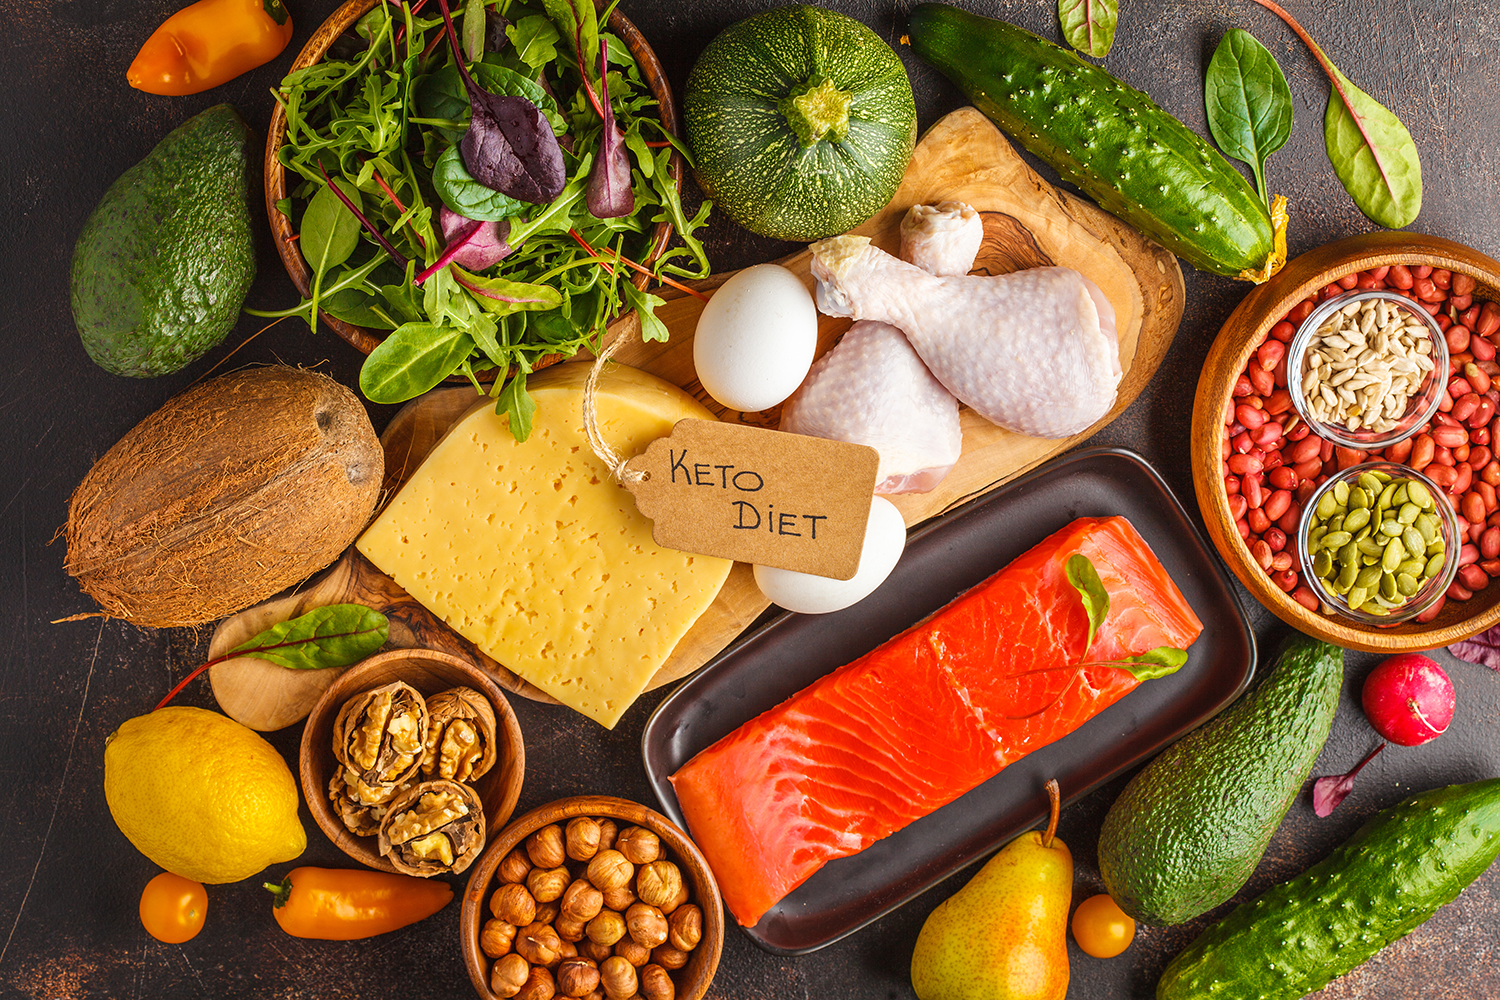 The keto diet is a food trend restaurants should take note of.